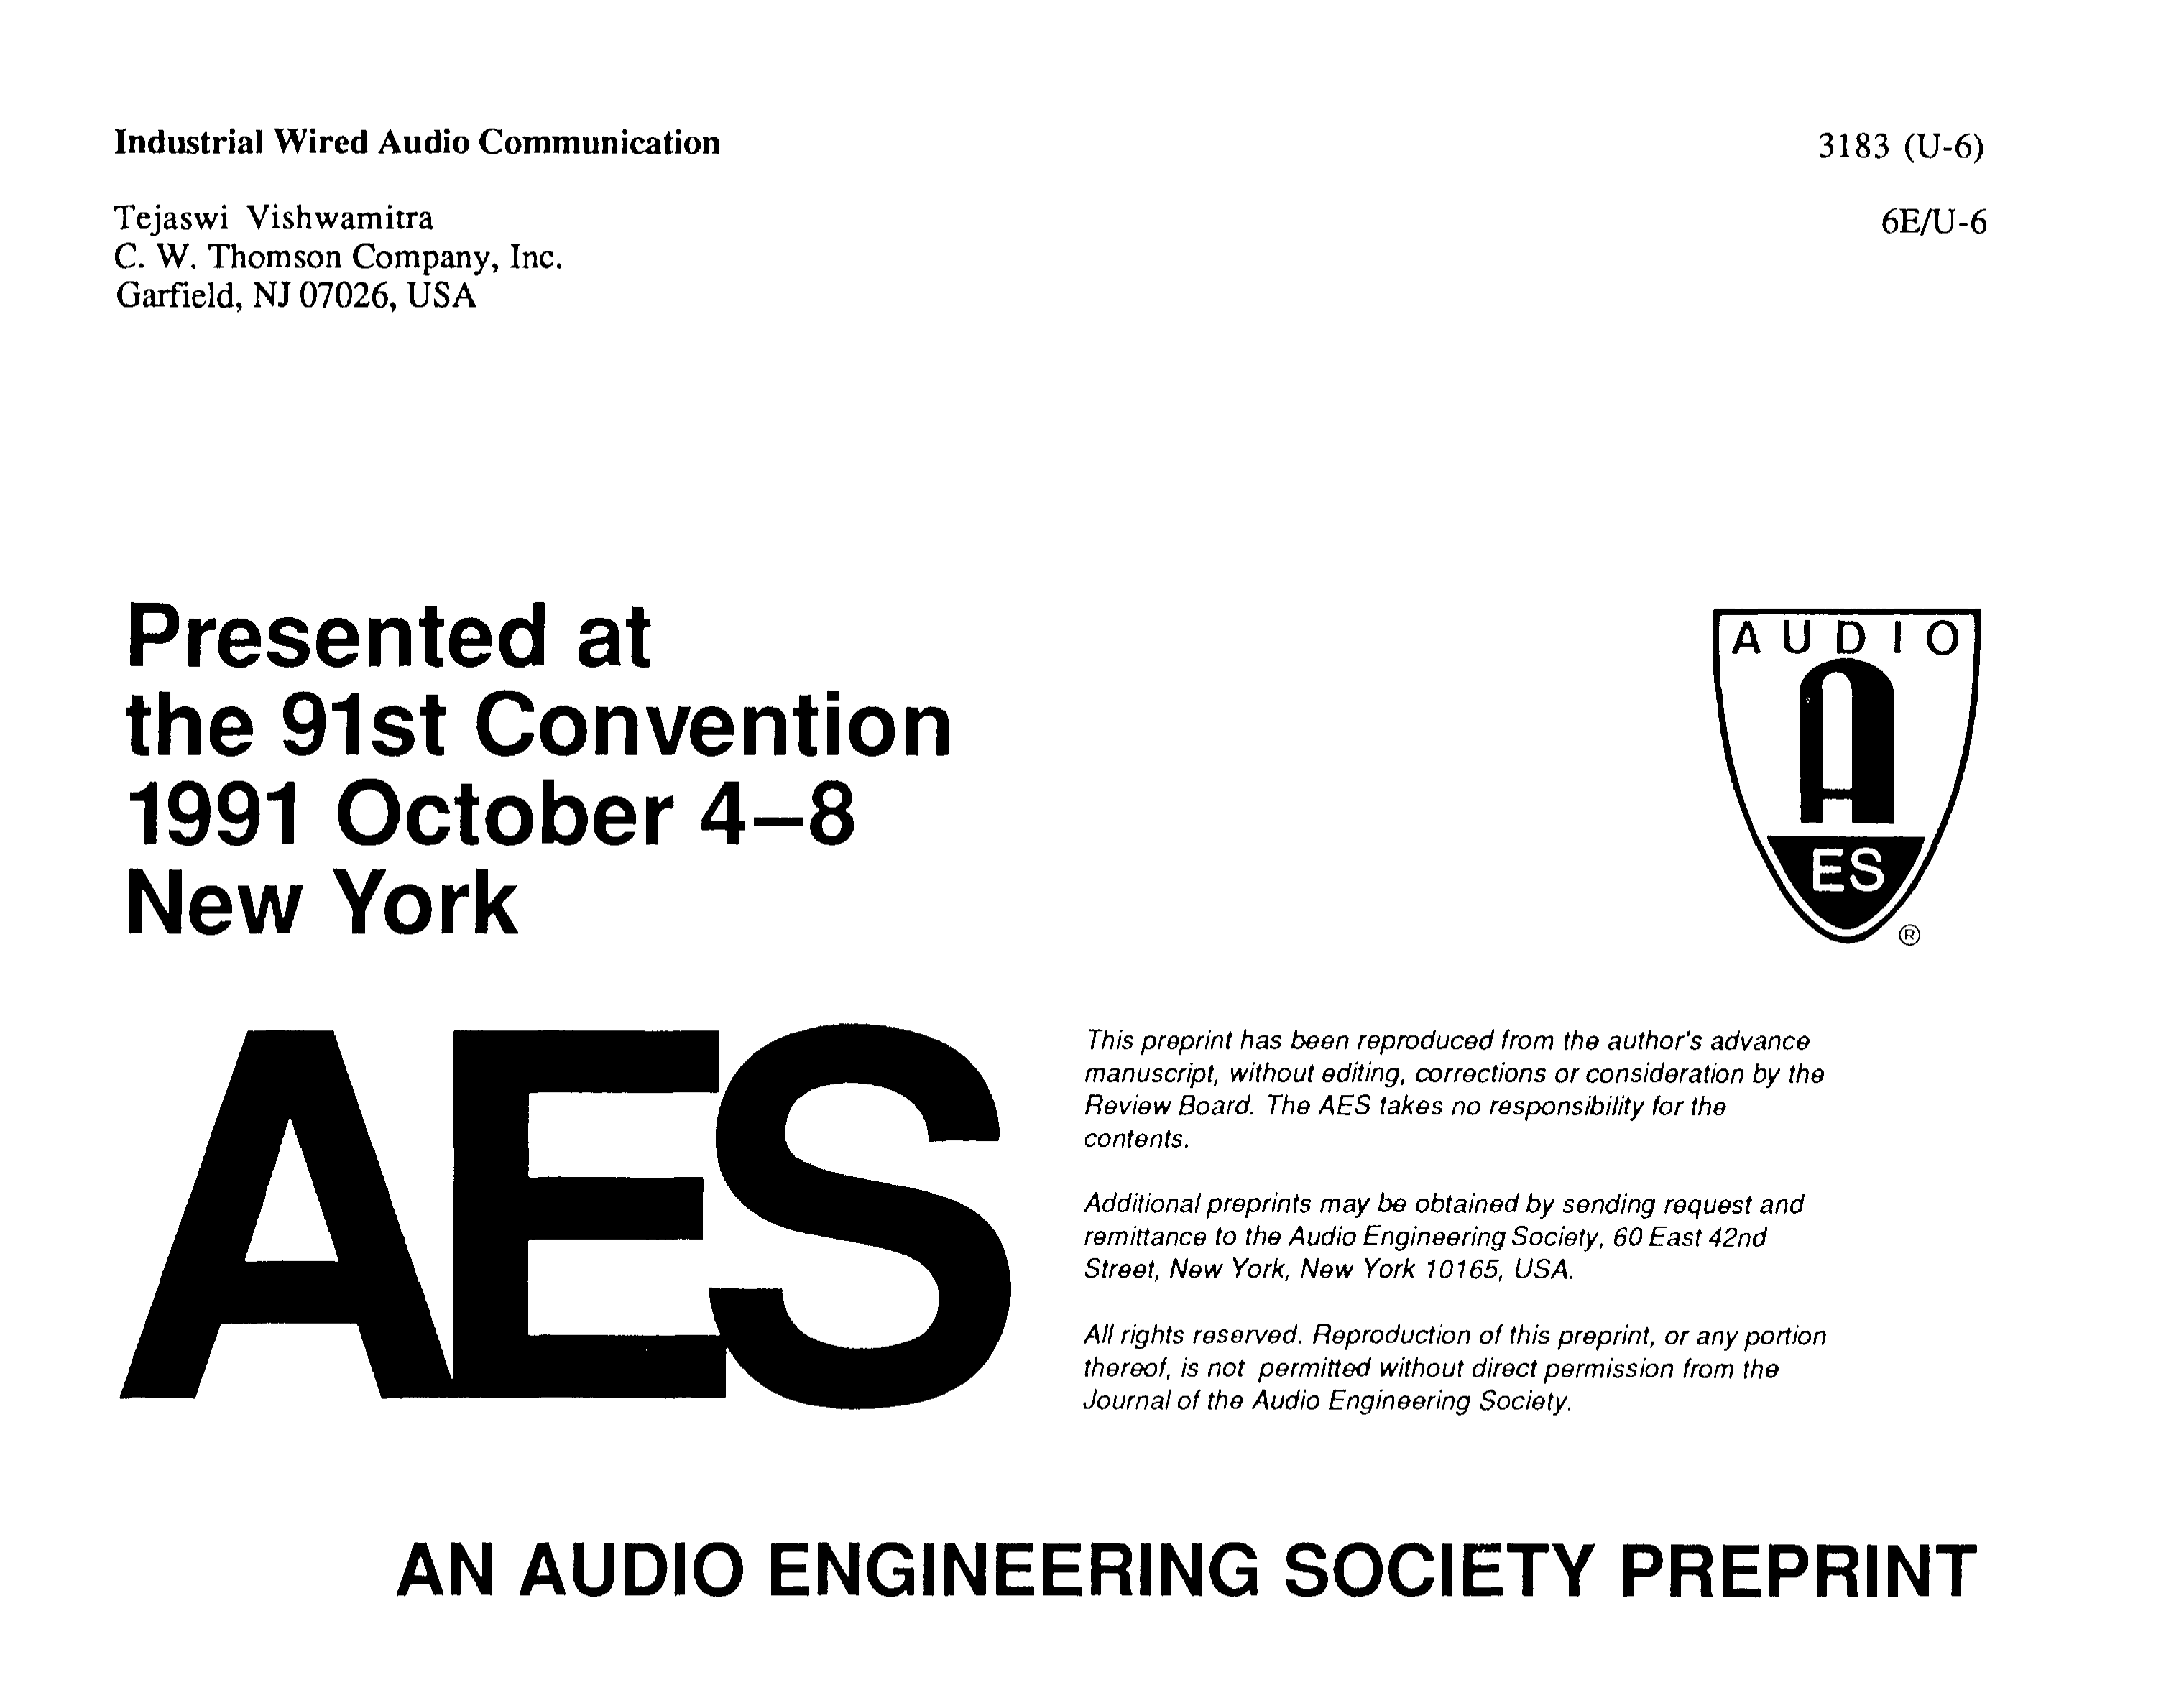 Aes E Library Industrial Wired Audio Communication Threephase Rectifier Input Circuit Free Electronic Circuits 8085